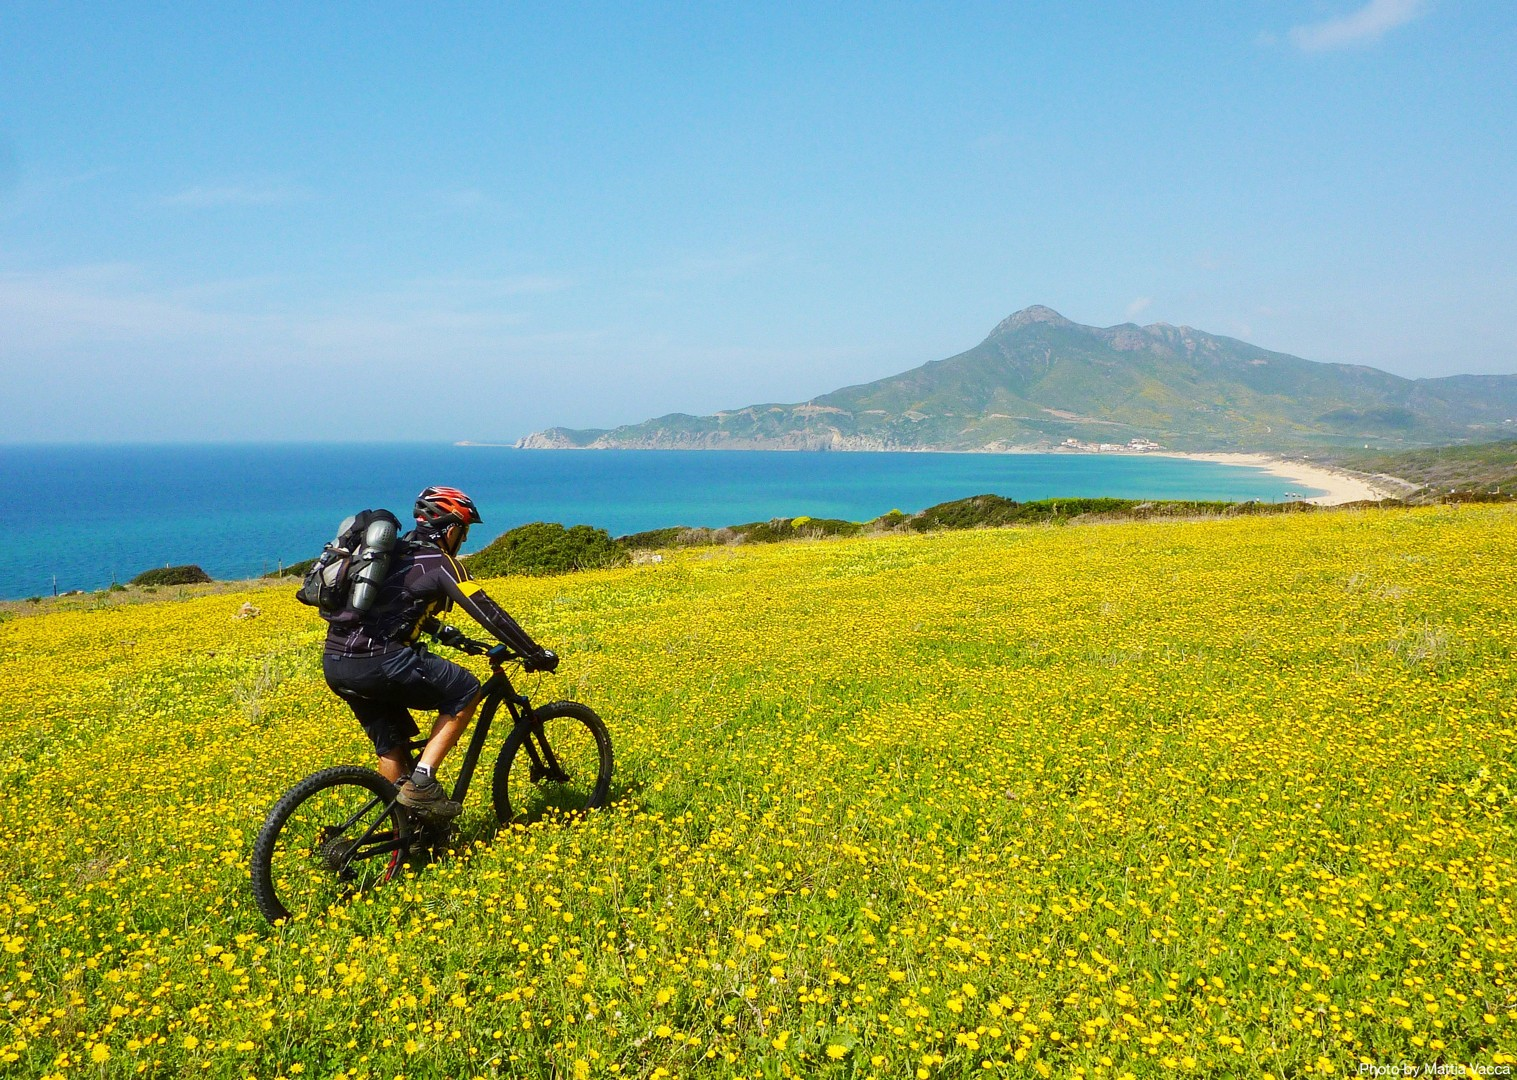 domusnovas-italy-sardinia-sardinian-enduro-guided-mountain-bike-holiday.jpg - Sardinia - Sardinian Enduro - Guided Mountain Bike Holiday - Mountain Biking